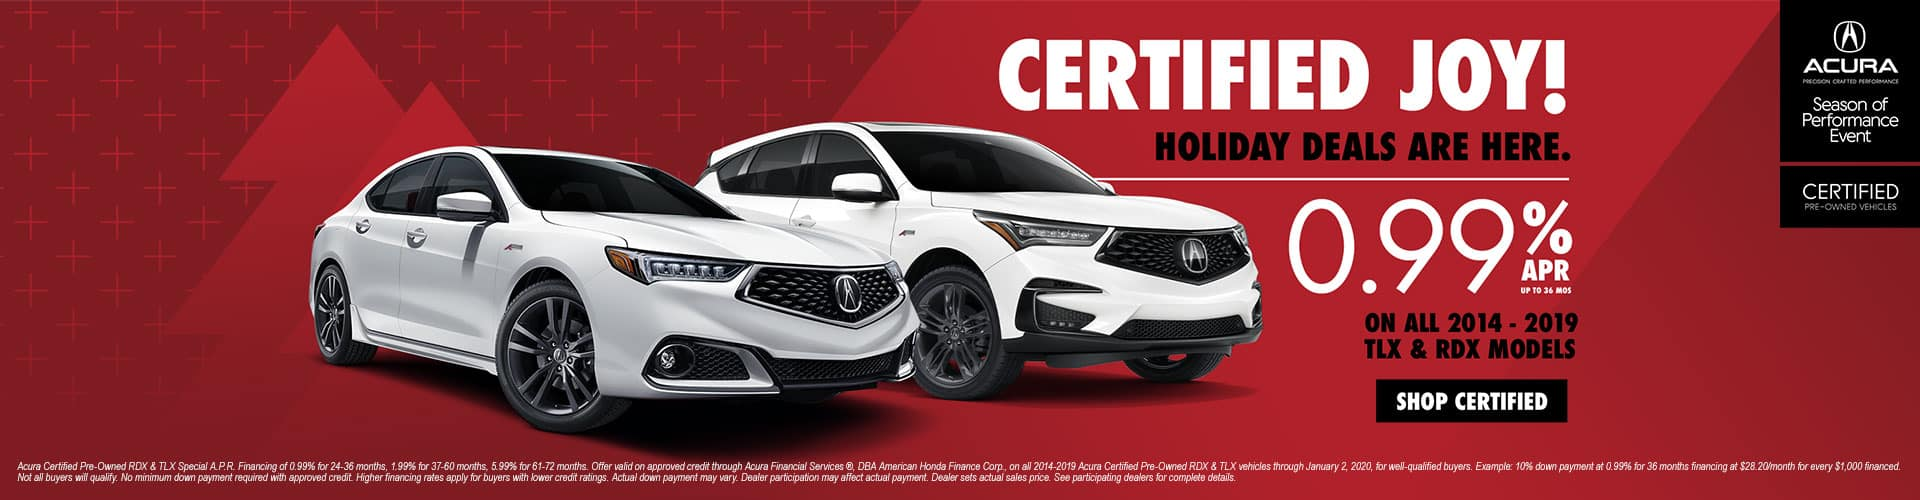 Certified Joy! Special Acura Certified Pre-Owned Rates